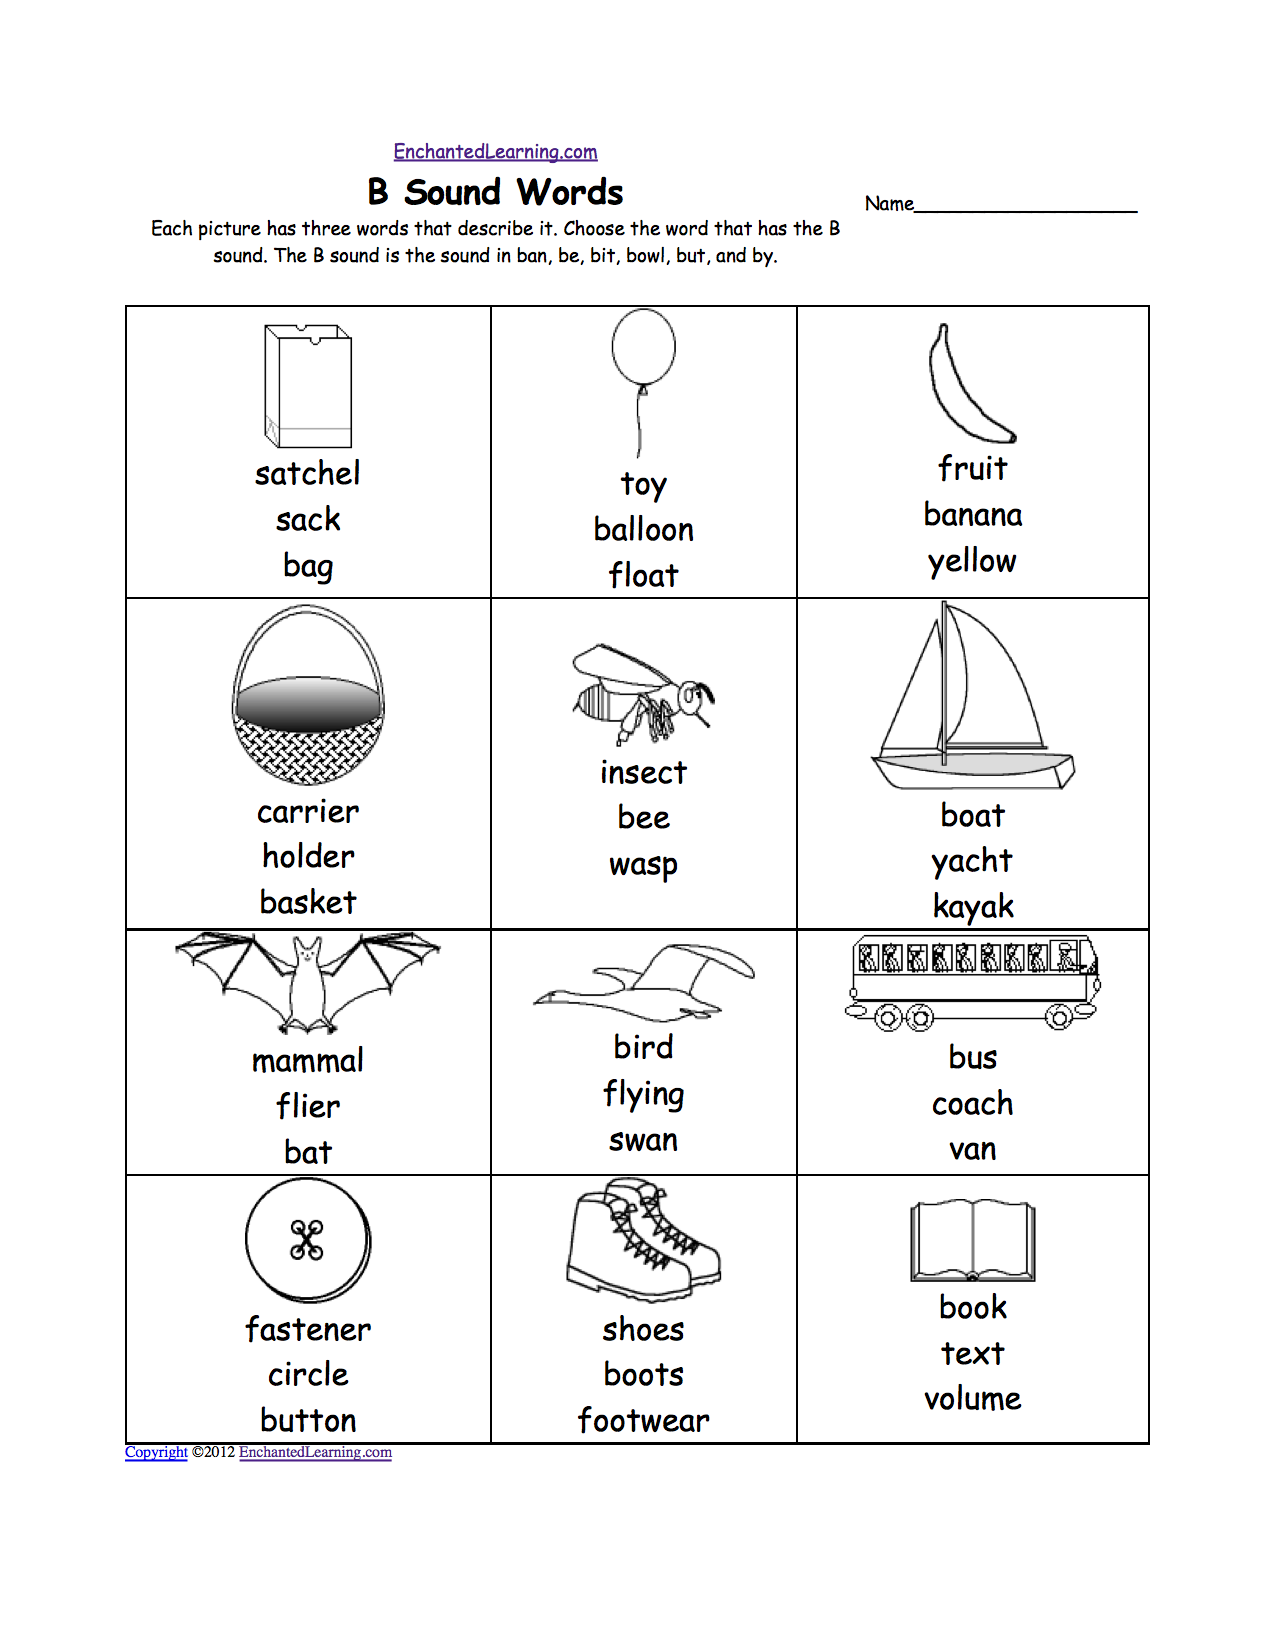 Weirdmailus  Fascinating Phonics Worksheets Multiple Choice Worksheets To Print  With Marvelous Quotbquot Sound Phonics Worksheet Multiple Choice Each Picture Has Three Words That Describe It Choose The Word That Has A Quotbquot Sound The Quotbquot Sound Is The Sound  With Beauteous Atmosphere Worksheet Also Uniform Motion Worksheet In Addition Figurative Language Worksheets Middle School And Identify The Transformation Worksheet As Well As Mixed Numbers To Improper Fractions Worksheets Additionally Surface Area Of Three Dimensional Figures Worksheet From Enchantedlearningcom With Weirdmailus  Marvelous Phonics Worksheets Multiple Choice Worksheets To Print  With Beauteous Quotbquot Sound Phonics Worksheet Multiple Choice Each Picture Has Three Words That Describe It Choose The Word That Has A Quotbquot Sound The Quotbquot Sound Is The Sound  And Fascinating Atmosphere Worksheet Also Uniform Motion Worksheet In Addition Figurative Language Worksheets Middle School From Enchantedlearningcom